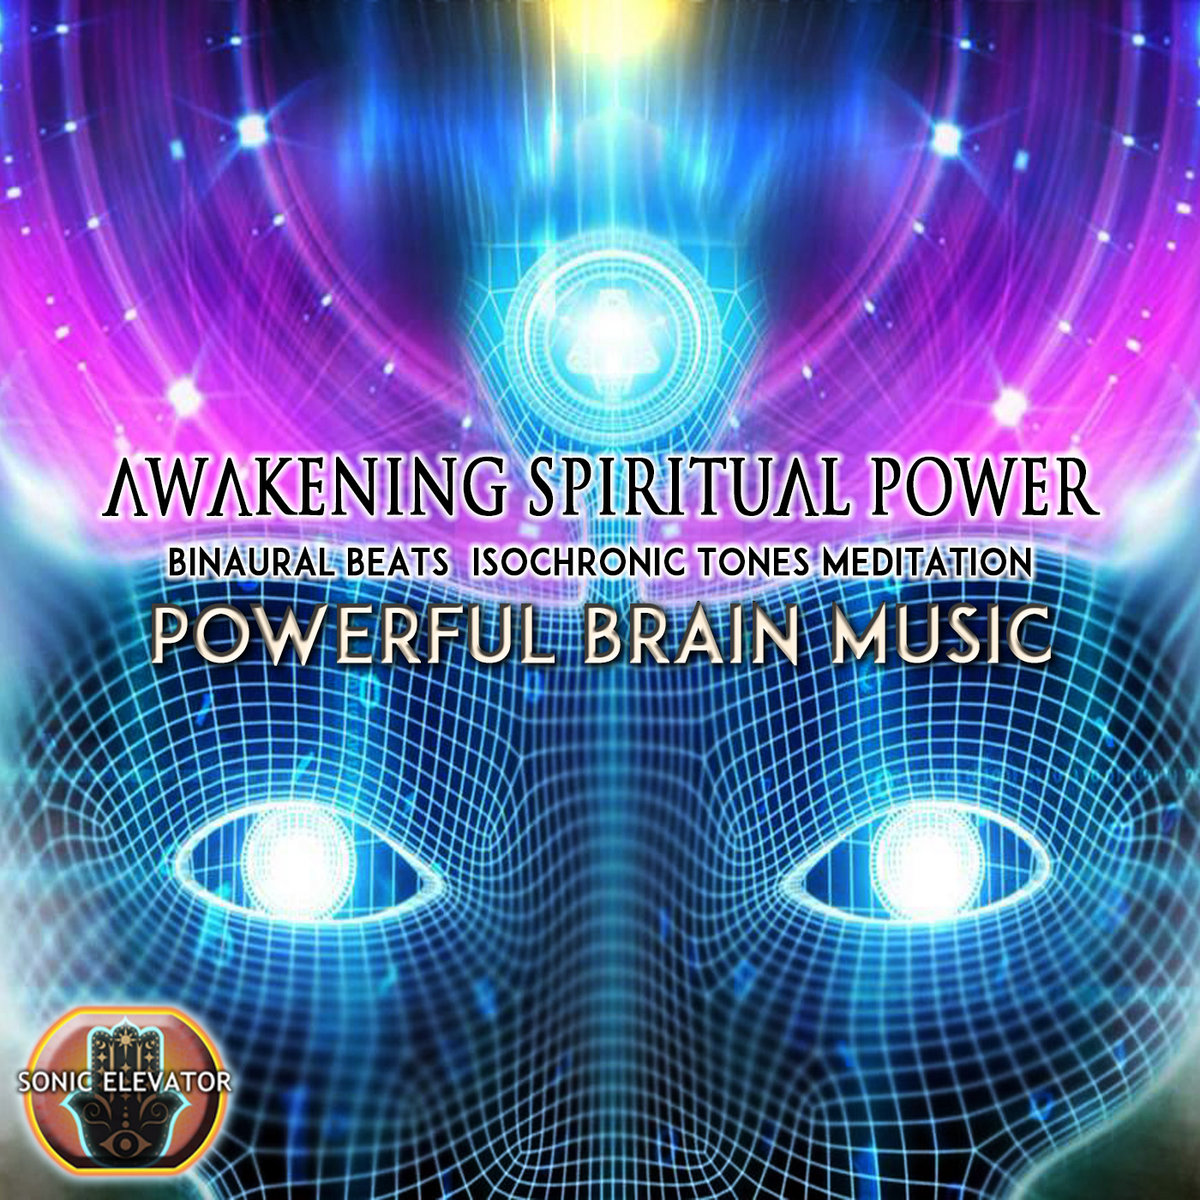 AWAKENING SPIRITUAL POWER When YOU Listen TO THIS Music